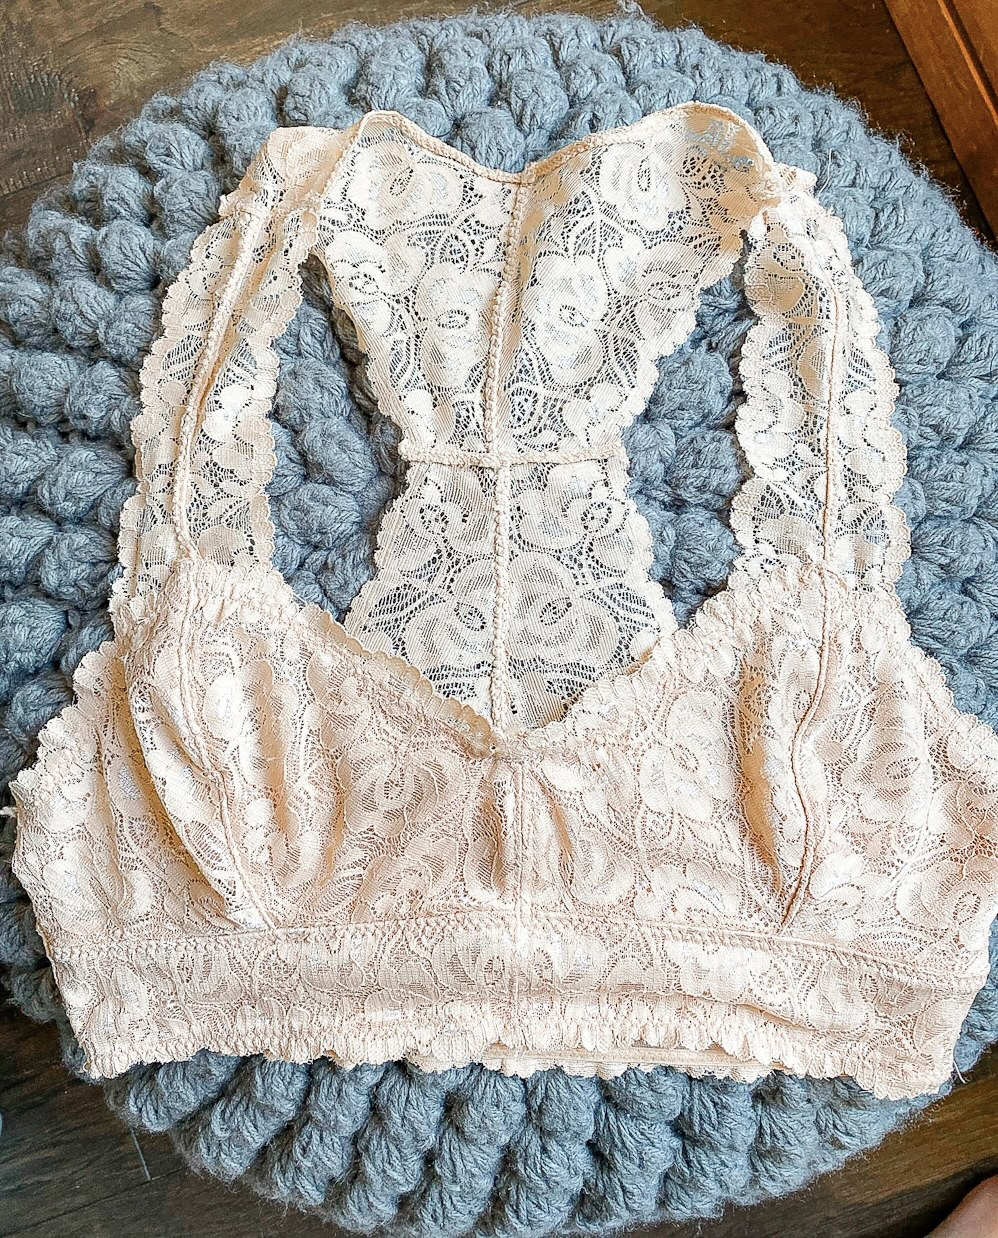 Amazon bralette and undergarments for women